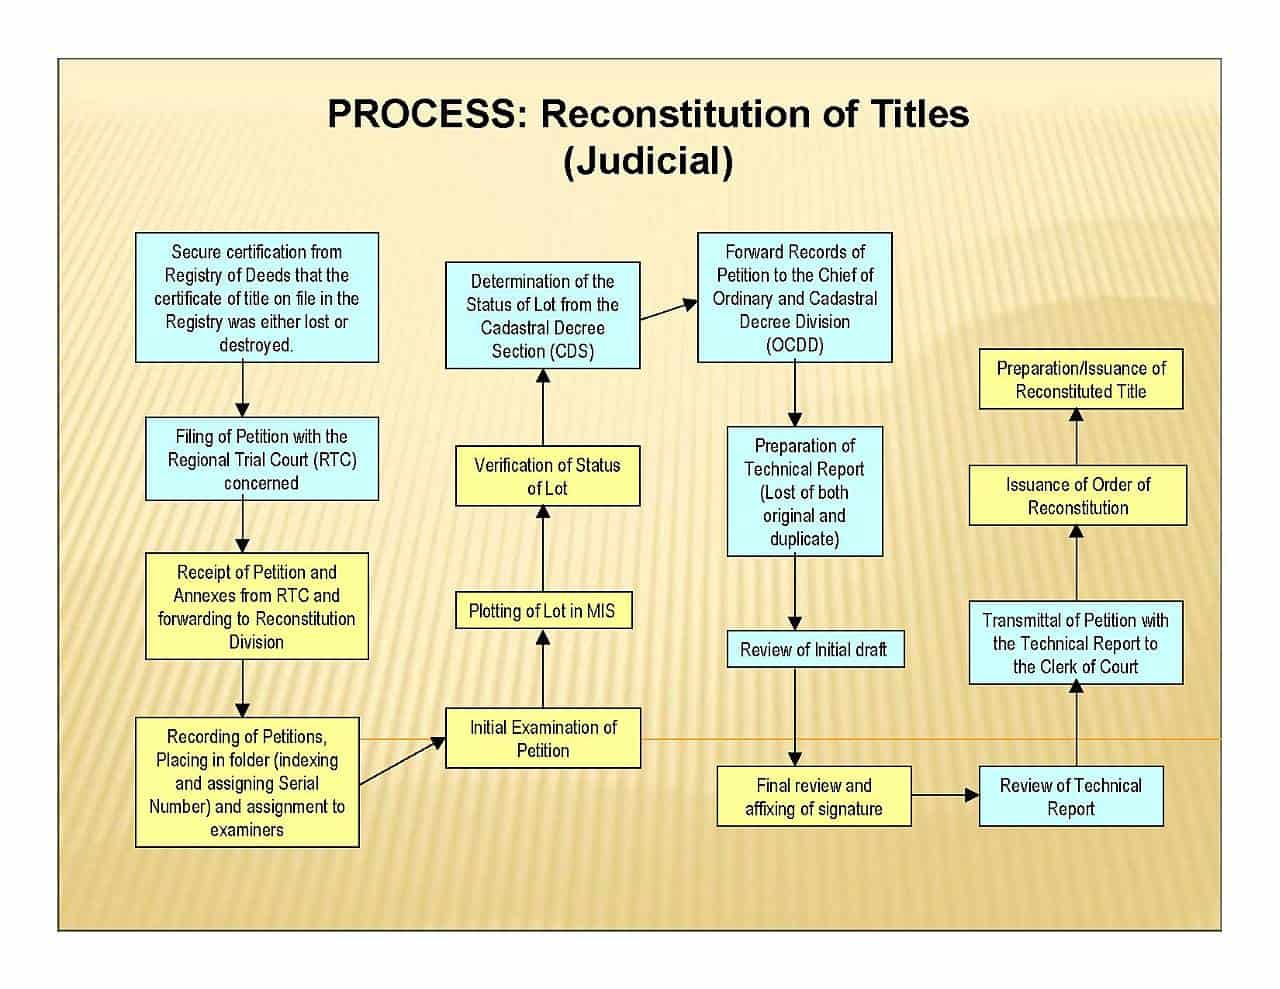 How To Reconstitute Or Replace Lostdestroyed Land Titles